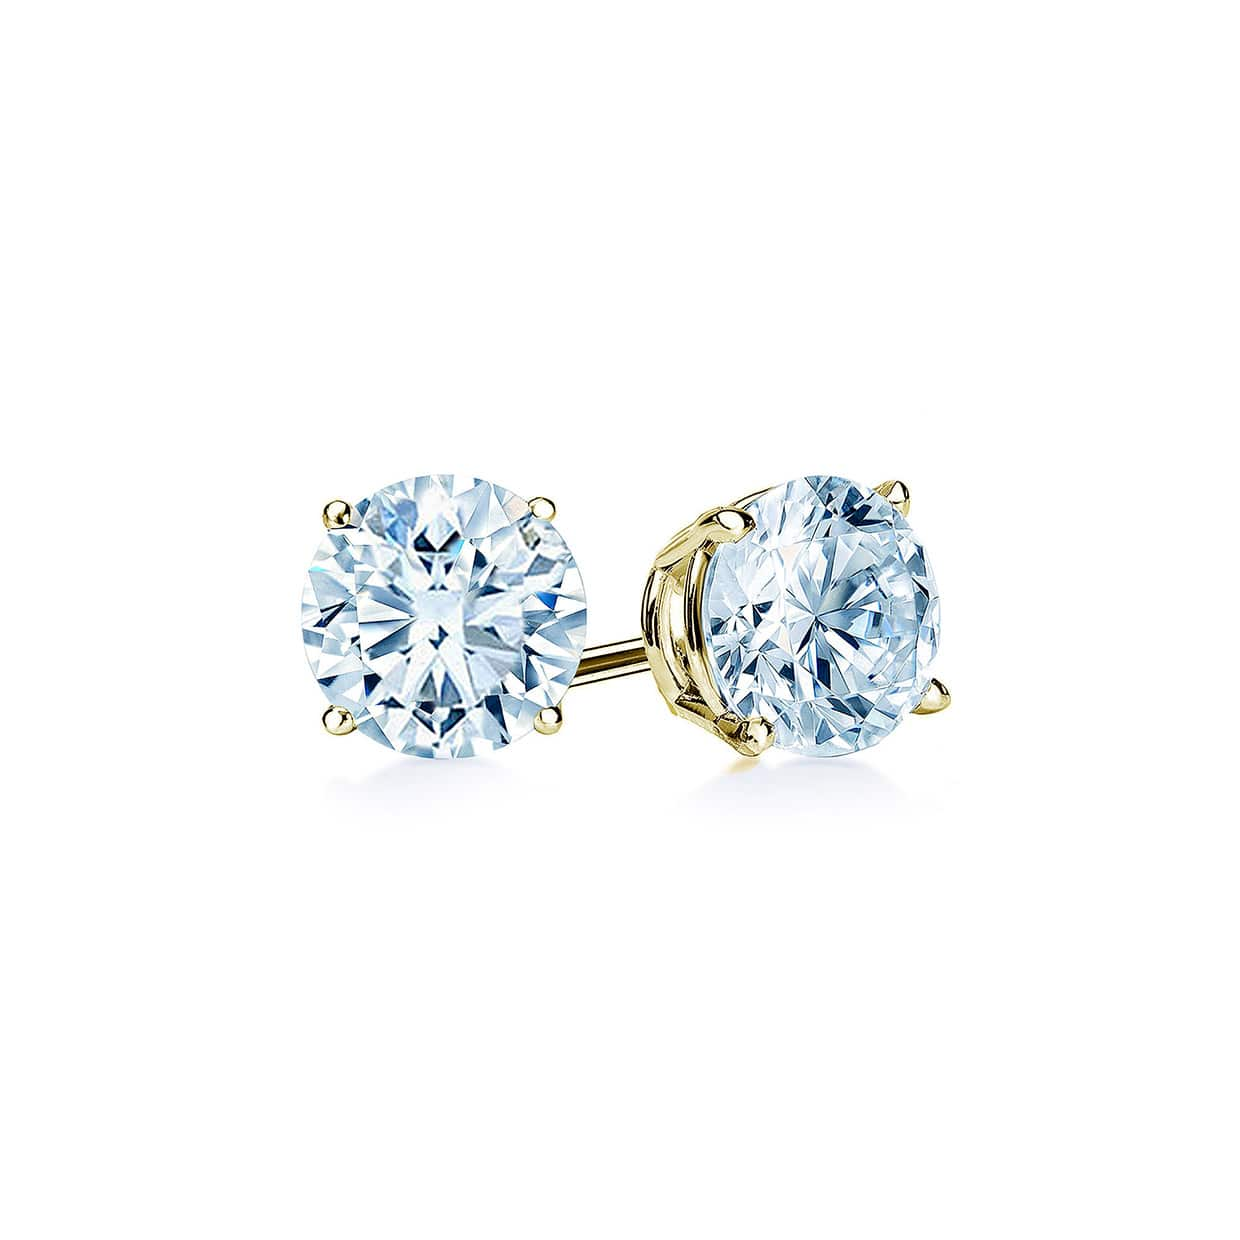 Oxford Gold Classic Solitaire Earrings - Abelstedt